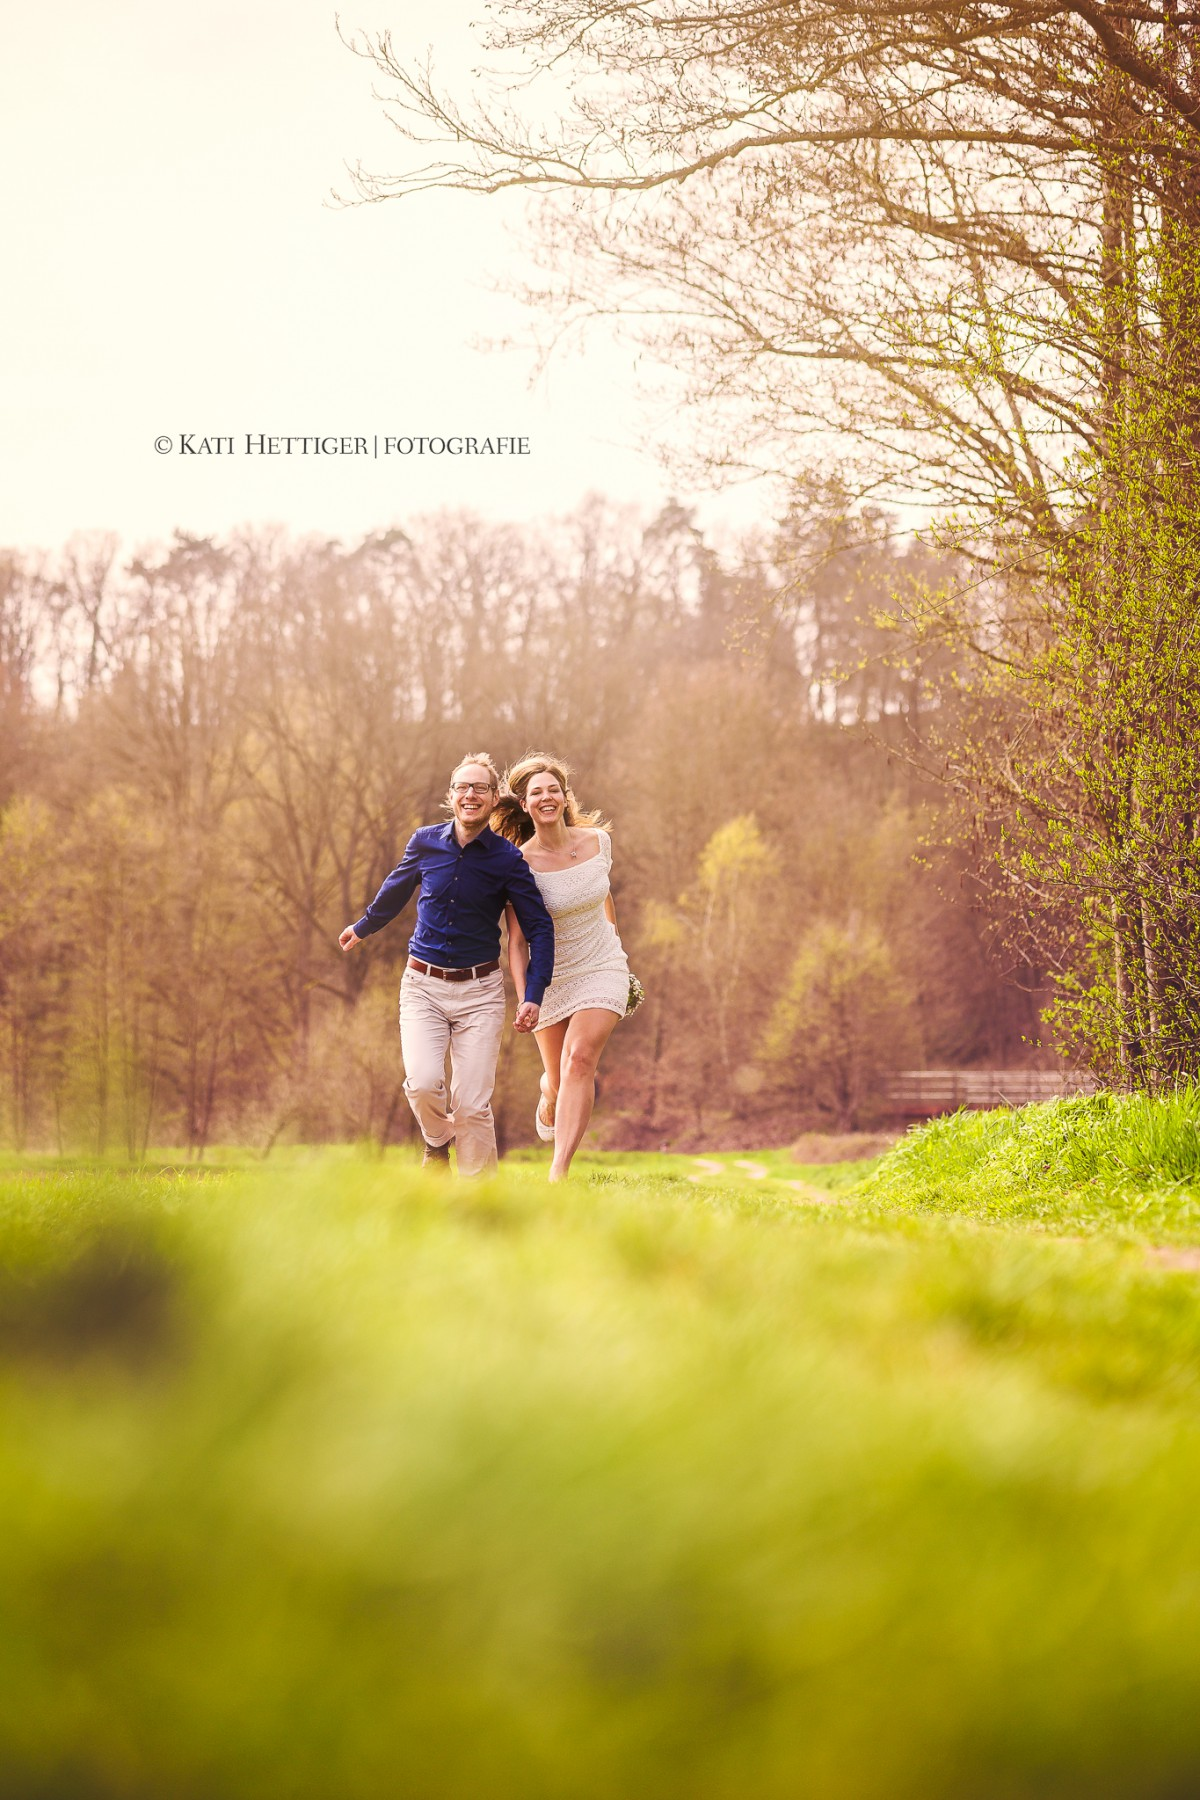 Verlobungs-Shooting Engagement- Shooting Marktheidenfeld Paar-Fotoshooting